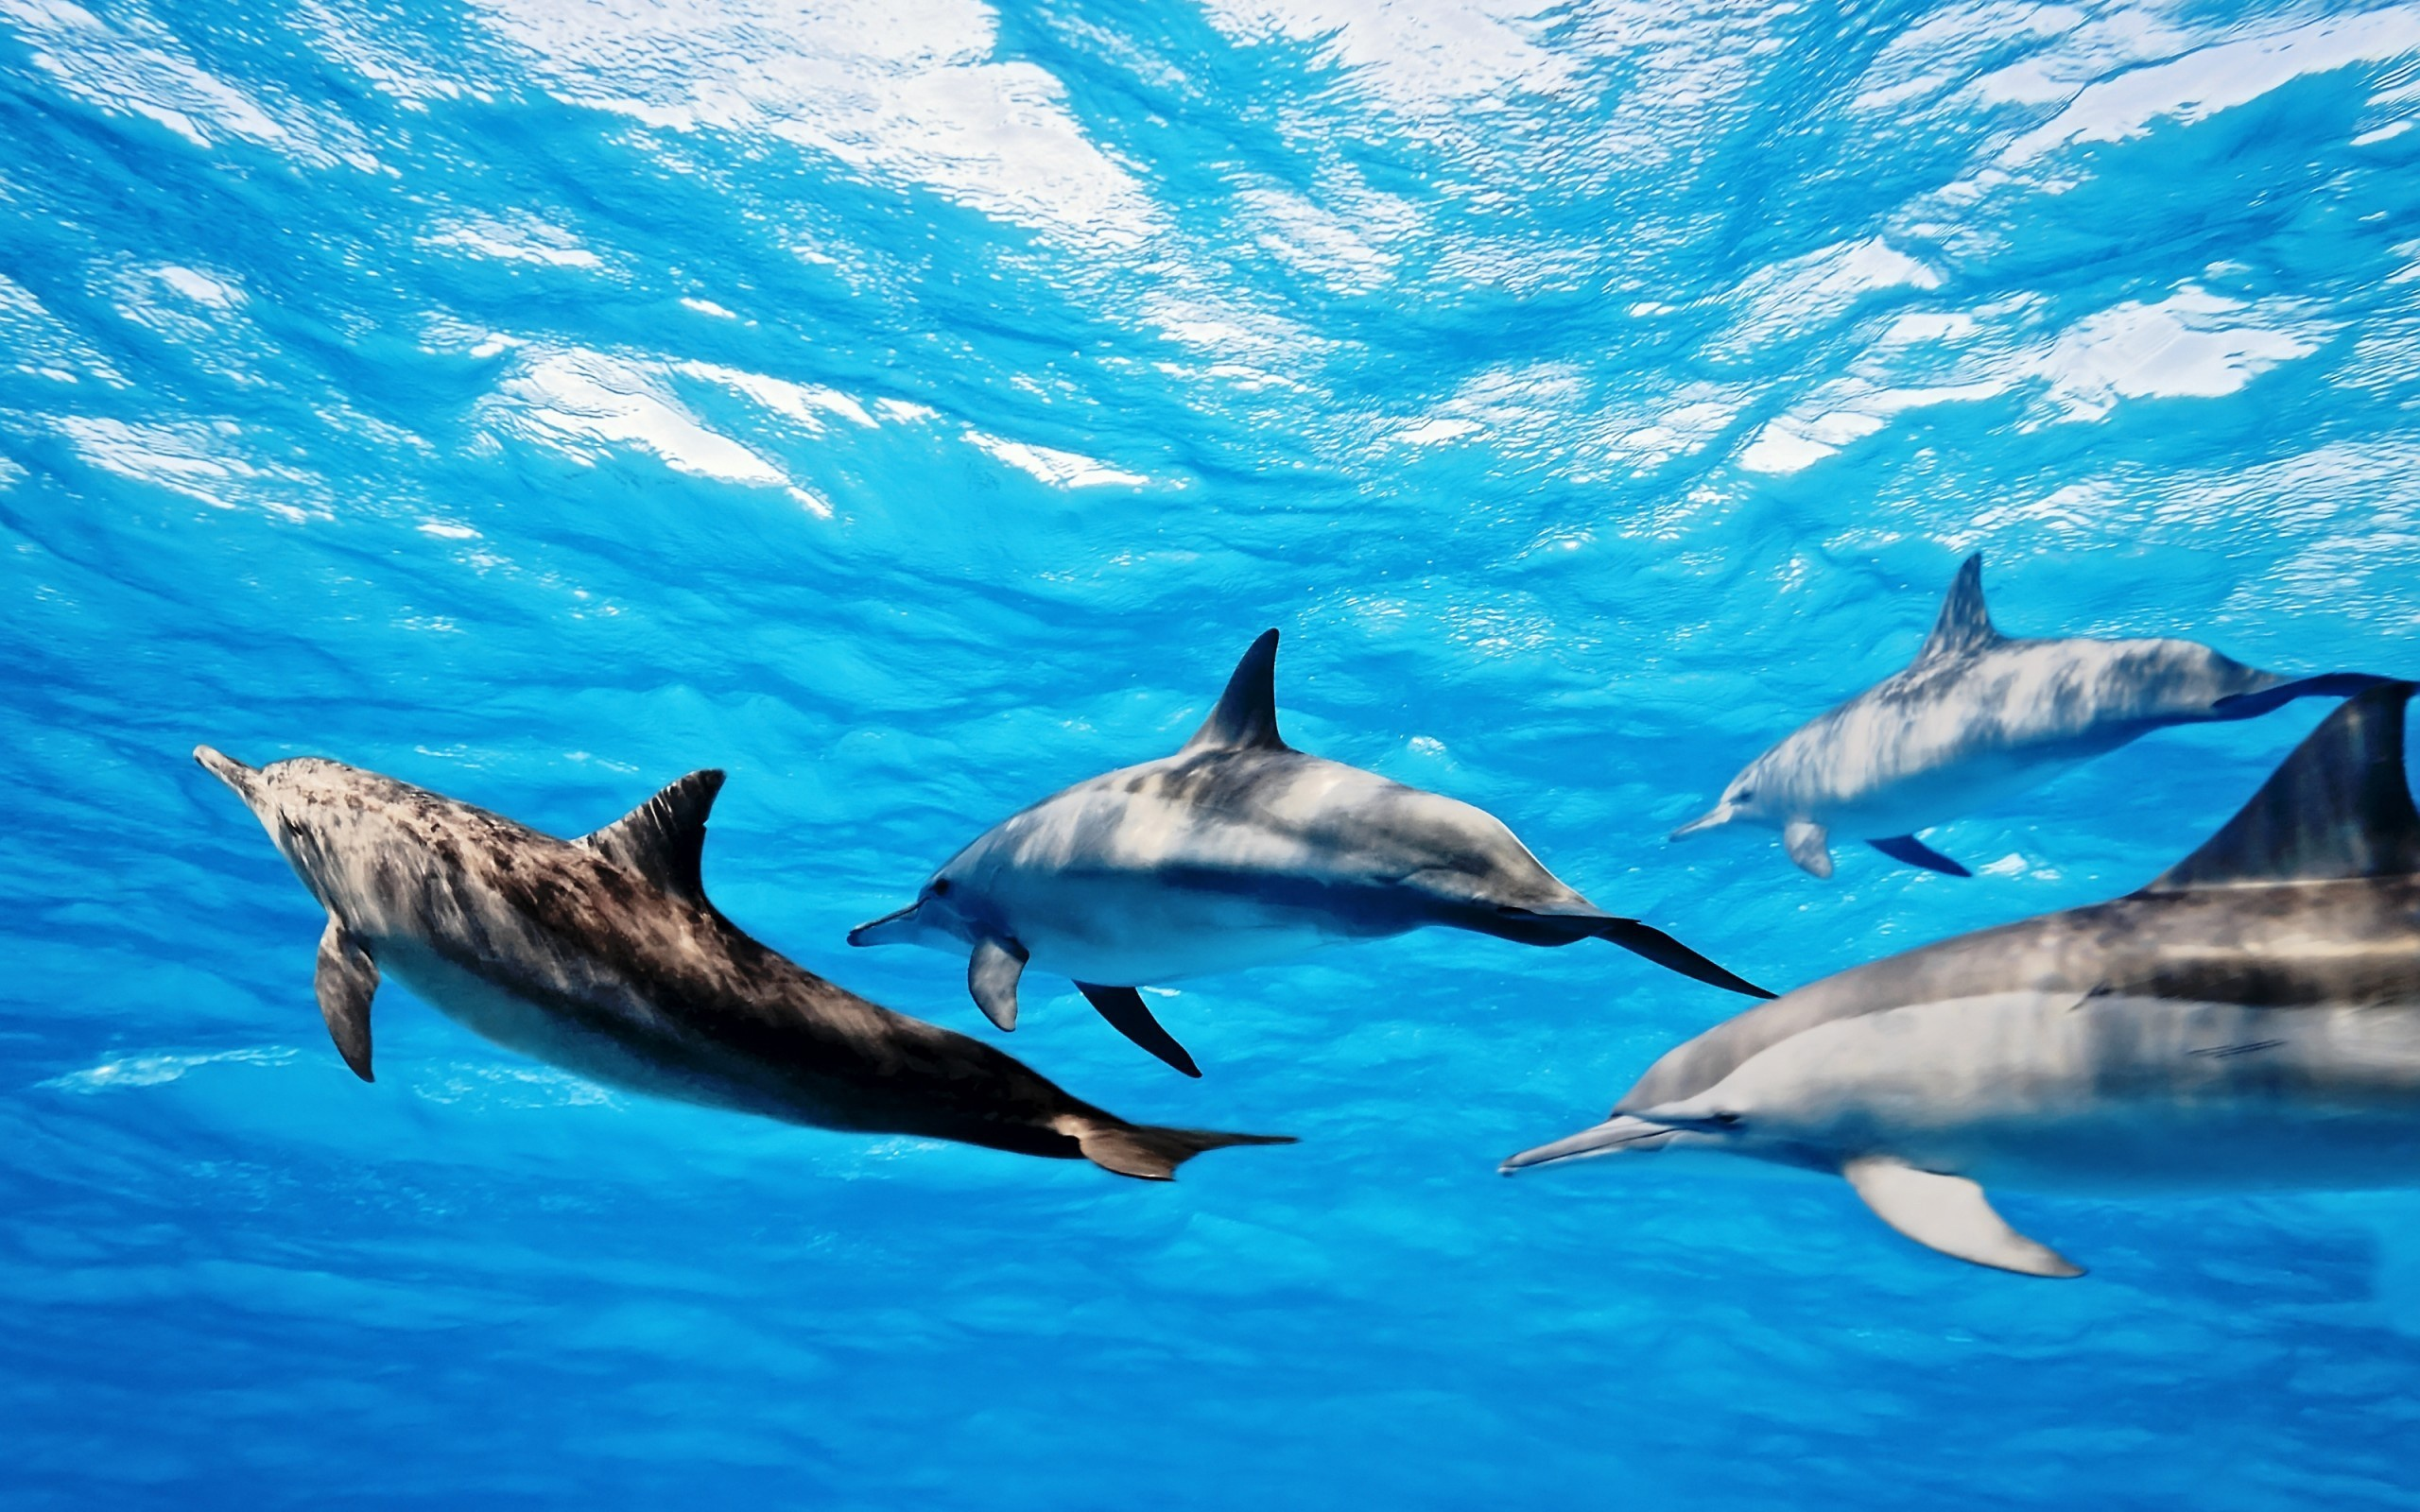 Dolphins wallpapers high definition wallpapers cool nature - Dolphins Wallpapers High Definition Wallpapers Cool Nature 47